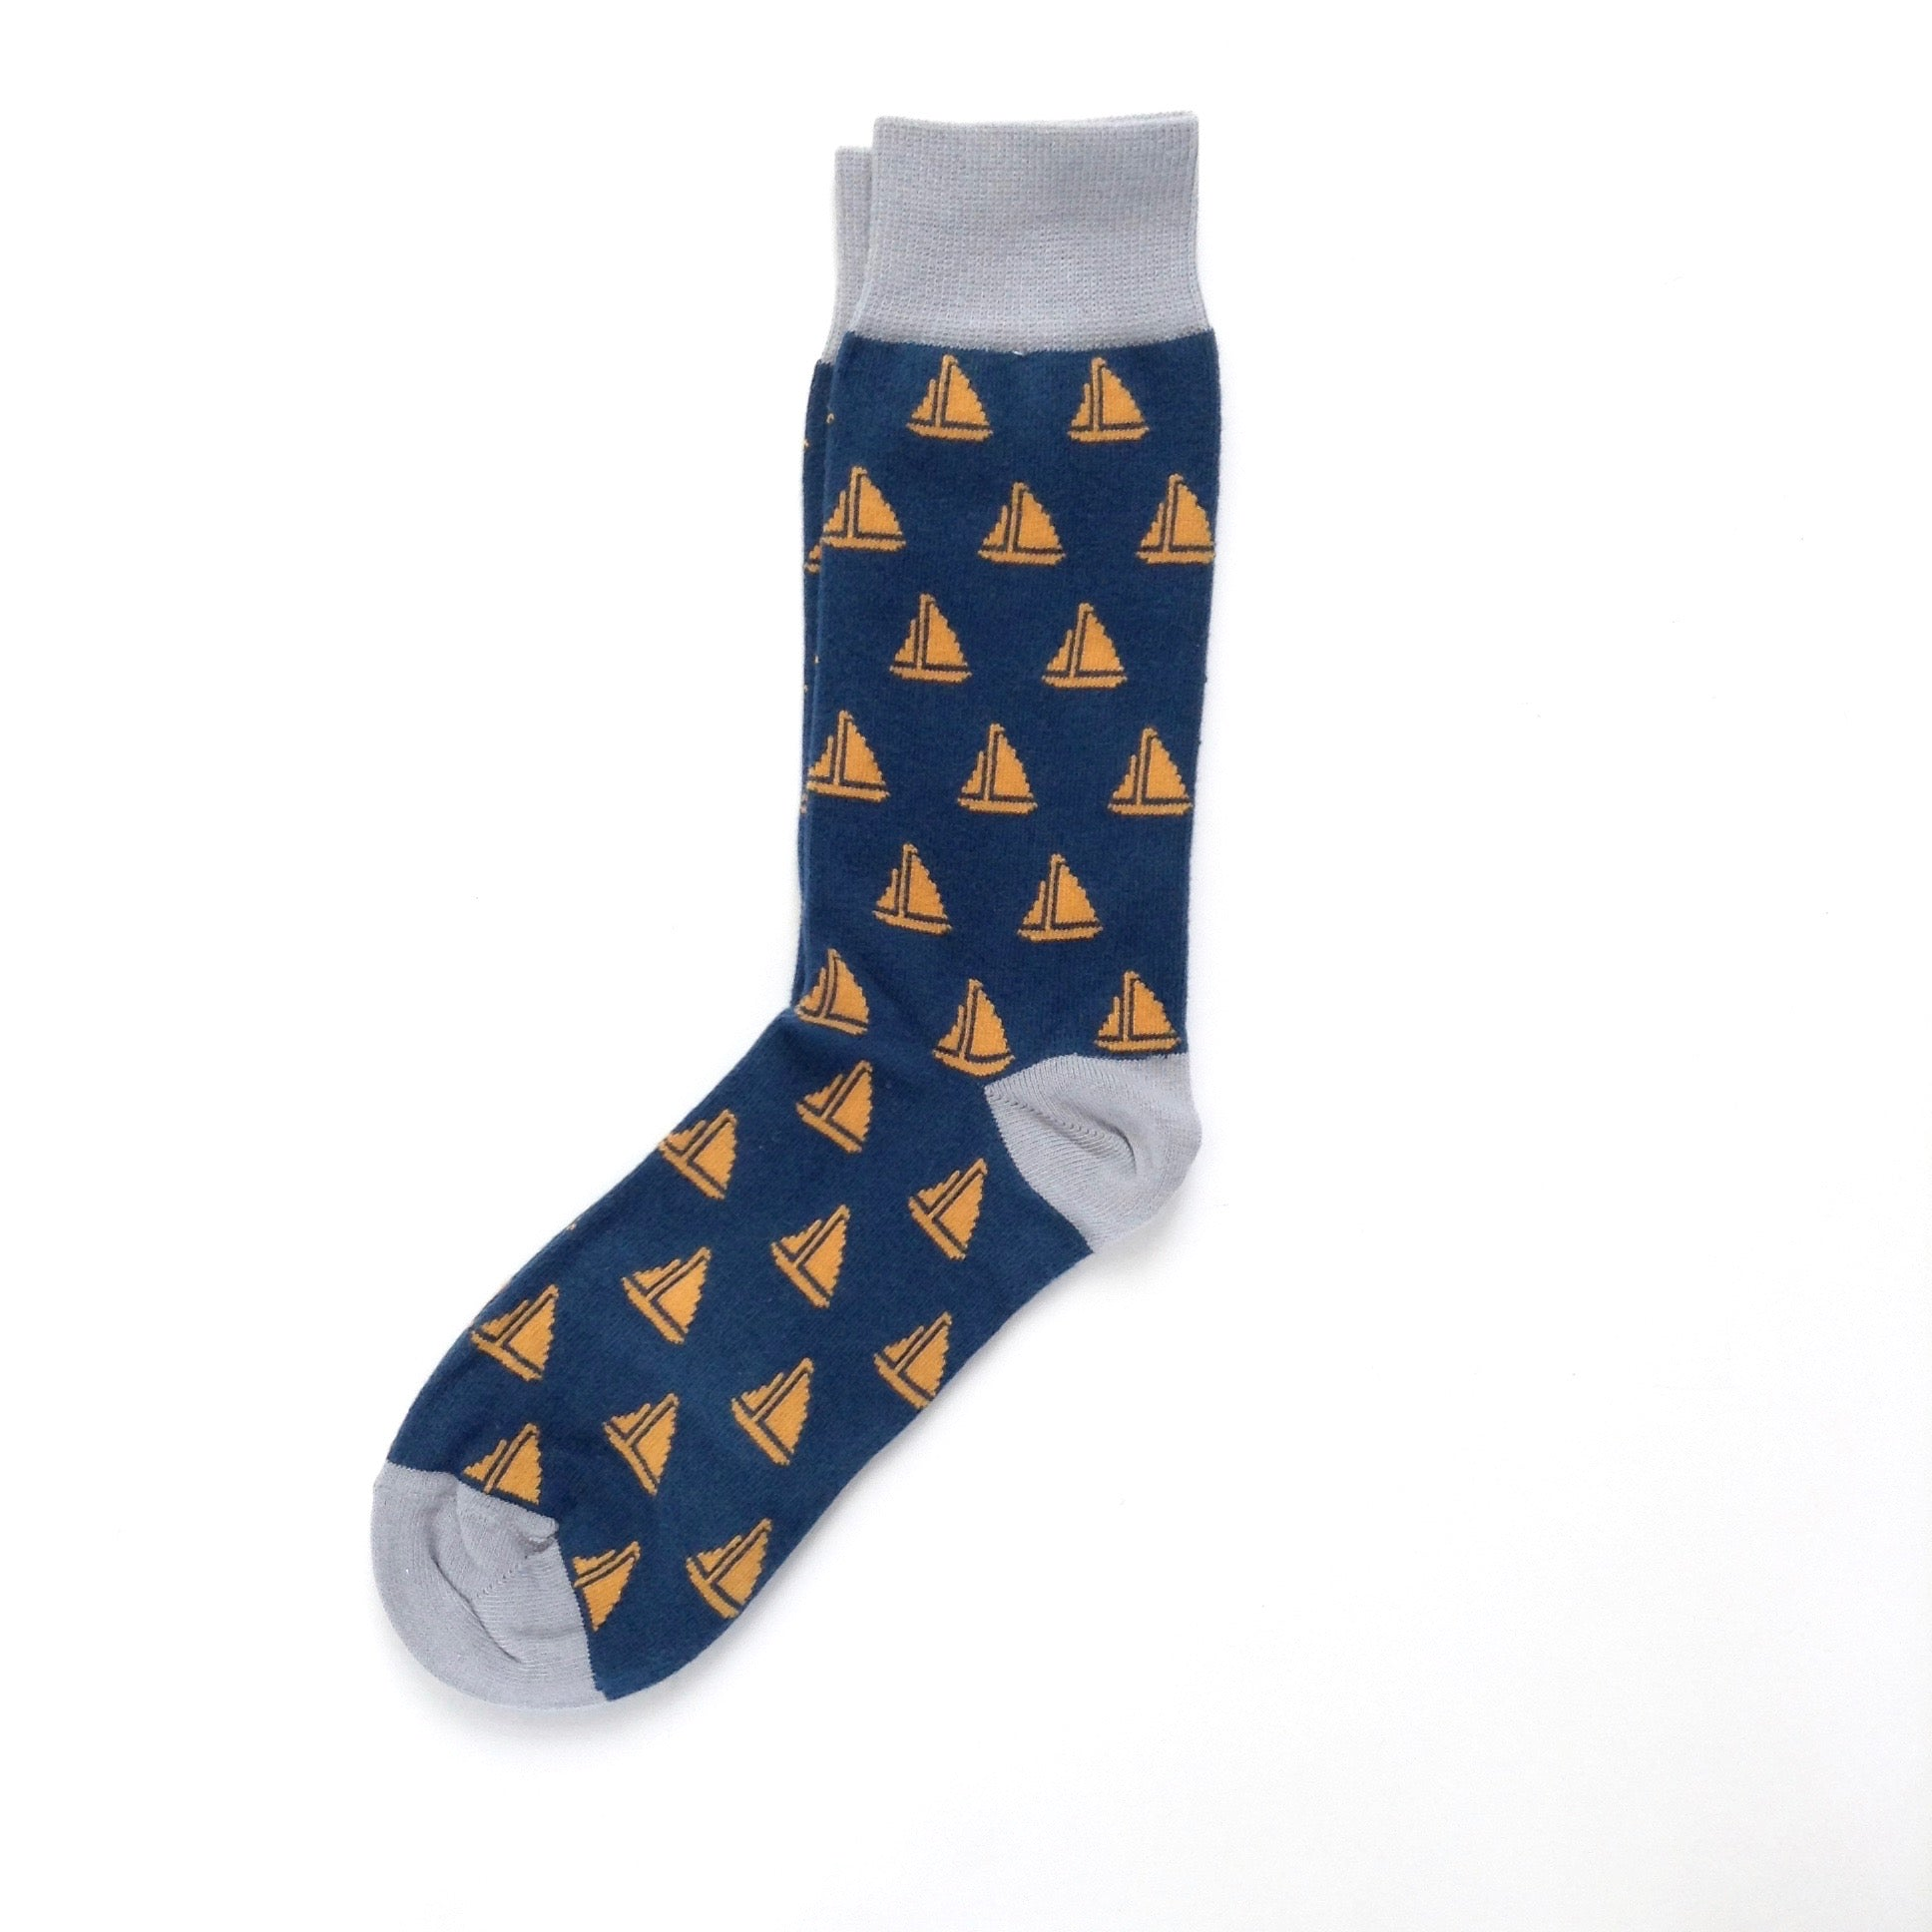 Catherine Tough Men's Sailboat Socks